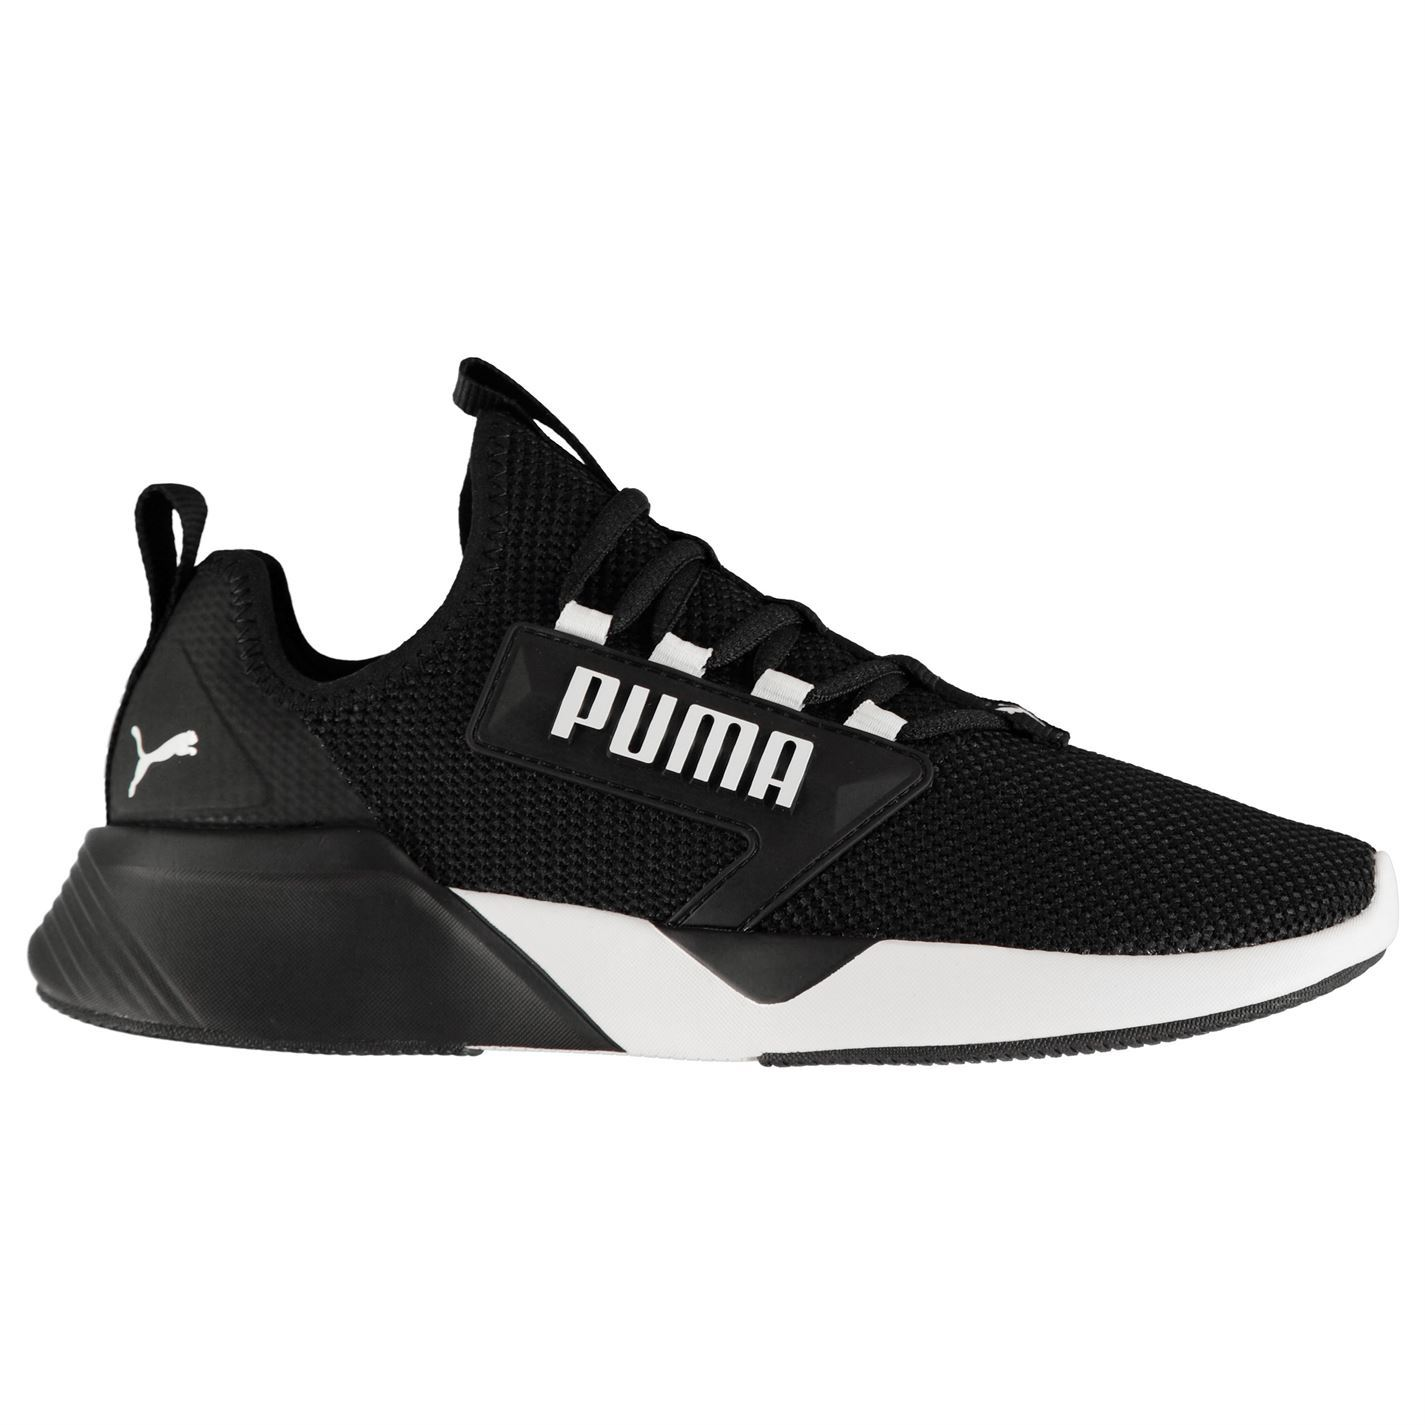 best service 1a298 8f073 Details about Puma Retaliate Running Shoes Mens Fitness Jogging Trainers  Sneakers